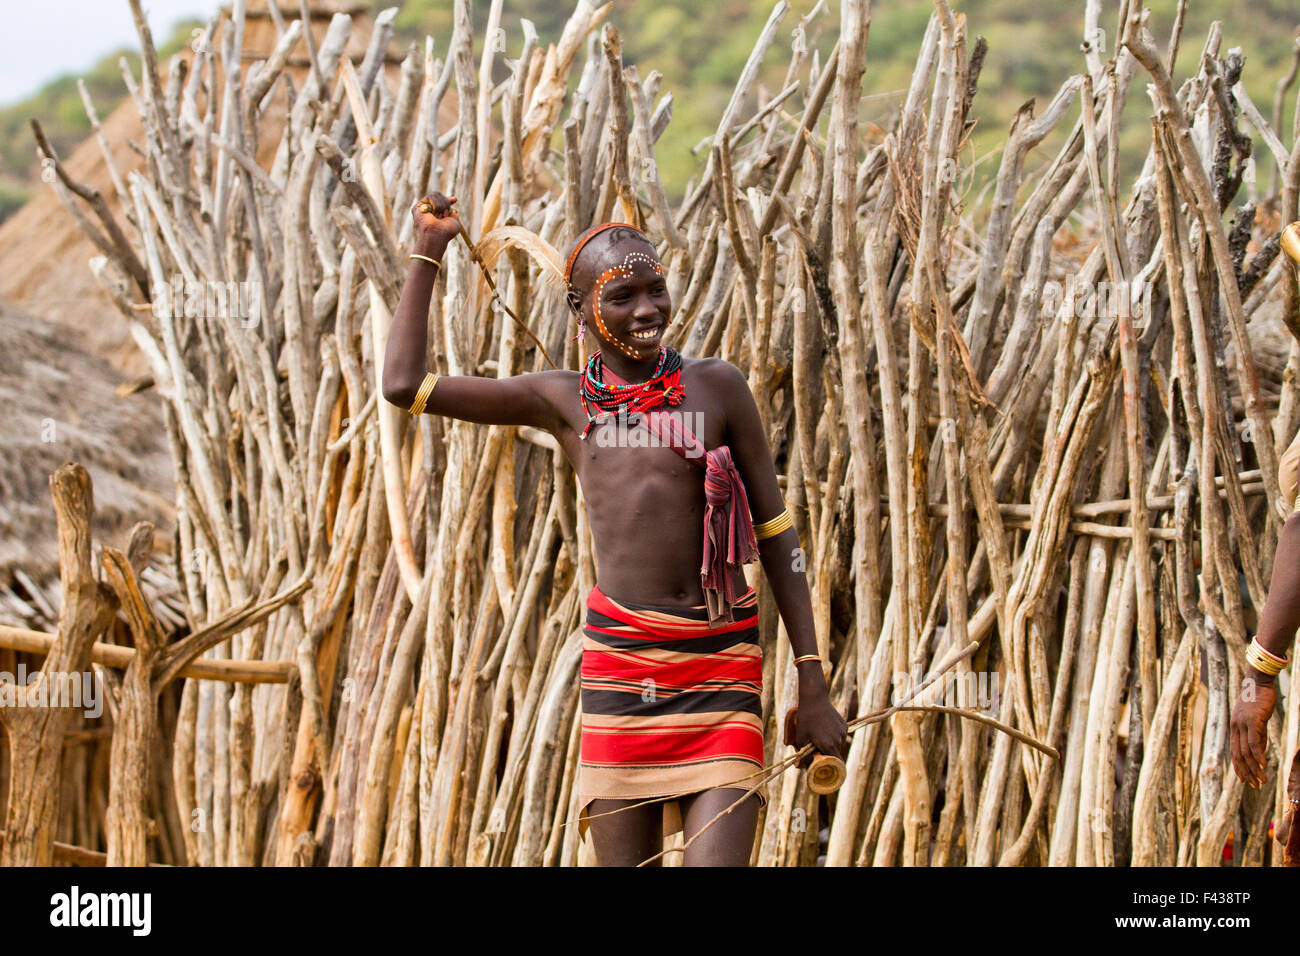 Man with reed whip ready to flog a female member at the Hamar tribe's  'Jumping of the Bull' ceremony. - Stock Image